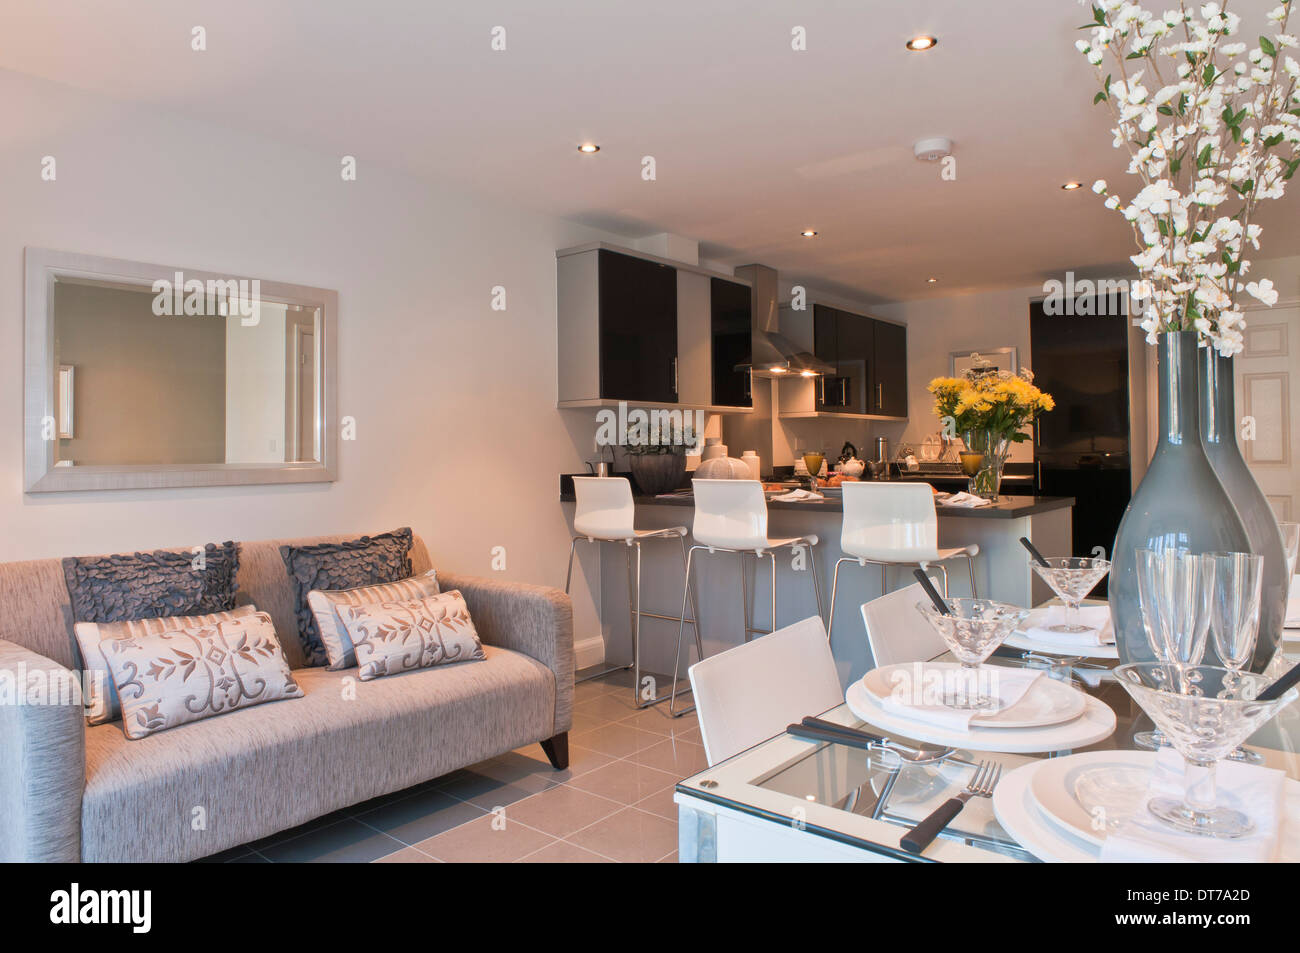 For Kitchen Diners Show Home Kitchen Diner With Sofa Stock Photo Royalty Free